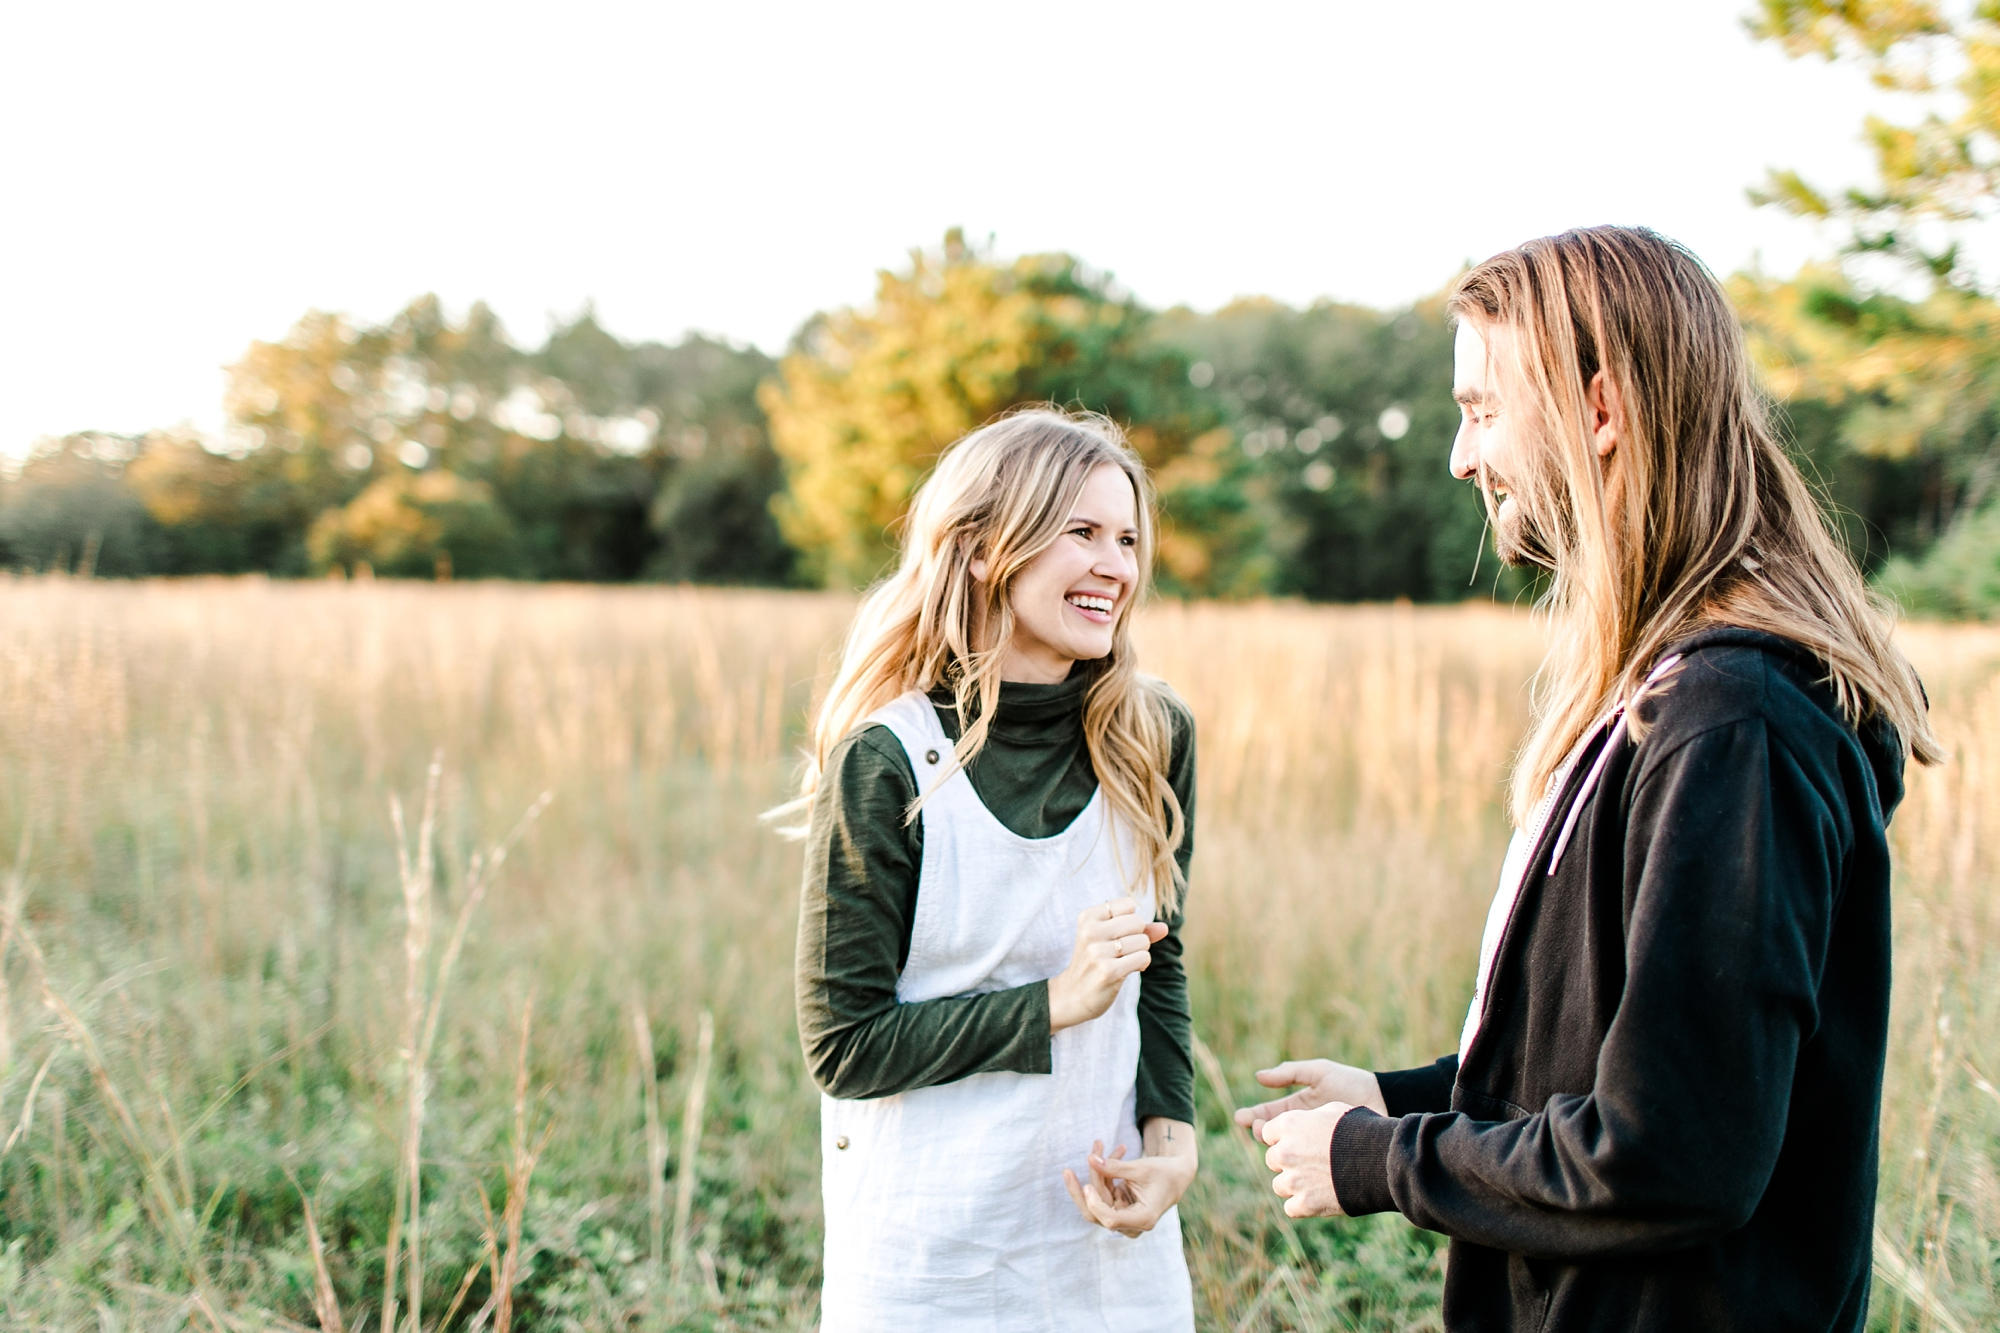 Natalie Broach Photography | Sean and Megan Jacksonville, Florida Engagement Session | Fall Engagement Photoshoot